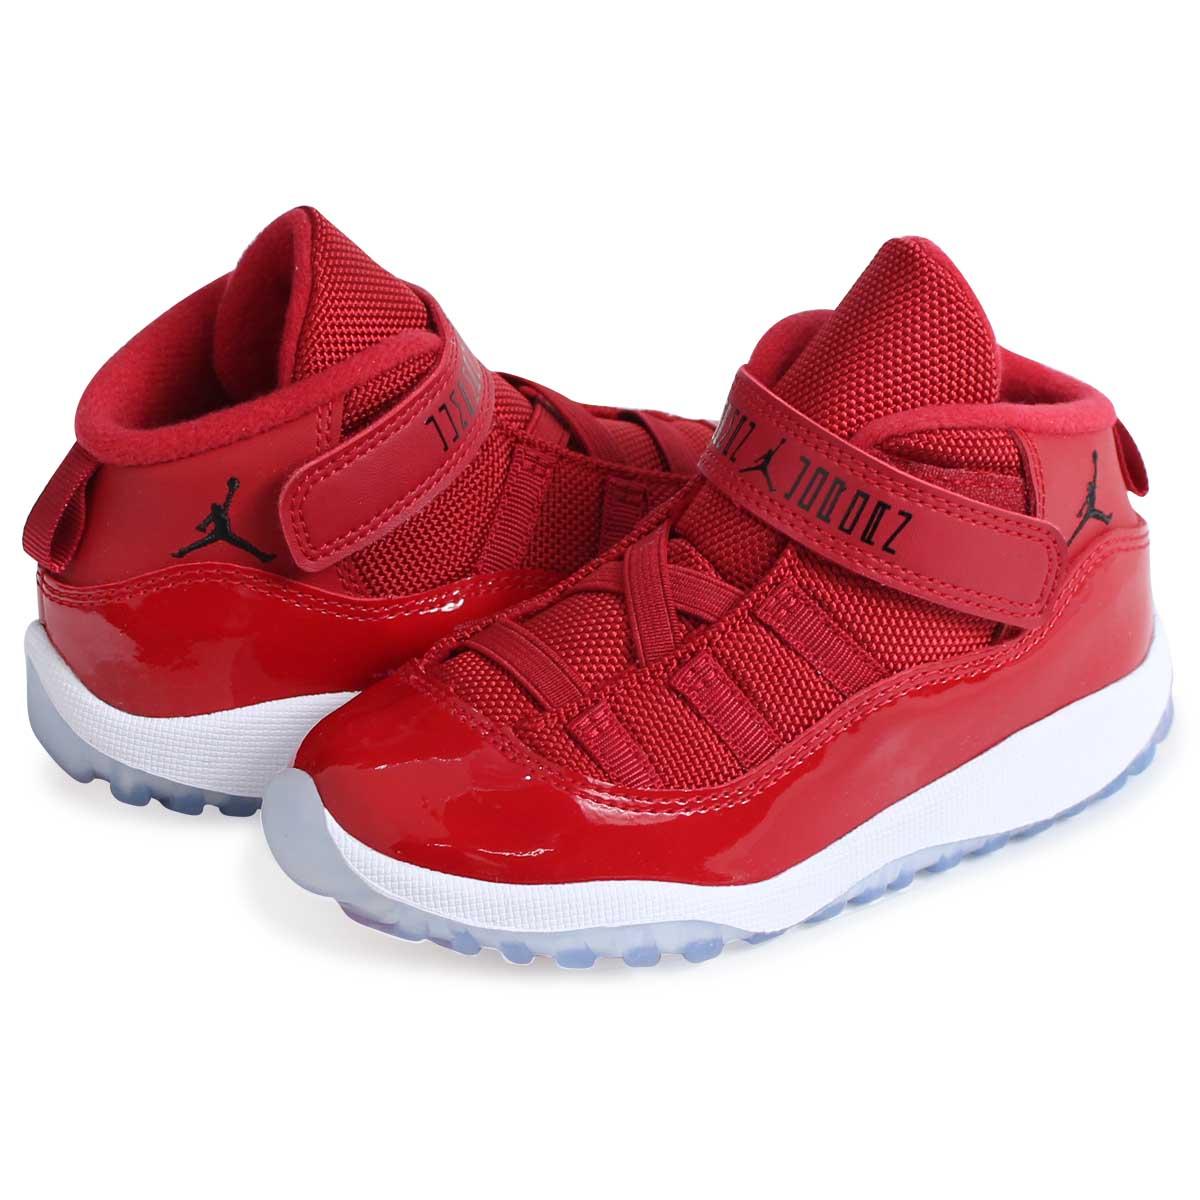 the latest 84200 de8d1 NIKE AIR JORDAN 11 BT WIN LIKE 96 Nike Air Jordan 11 baby sneakers  378,040-623 shoes red [load planned Shinnyu load in reservation product  12/22 ...